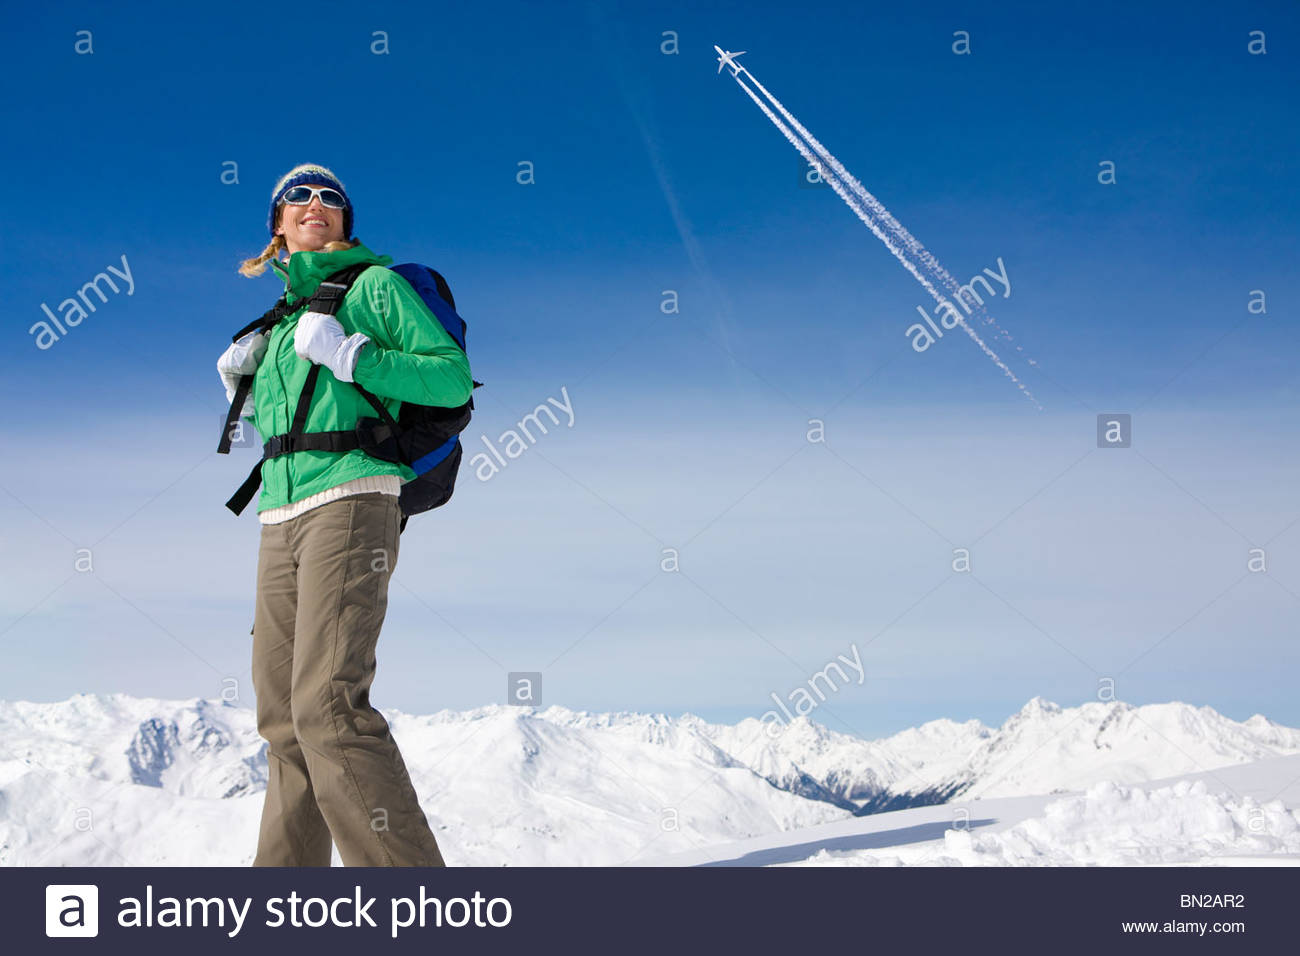 Airplane flying over woman backpacking on snowy mountain - Stock Image